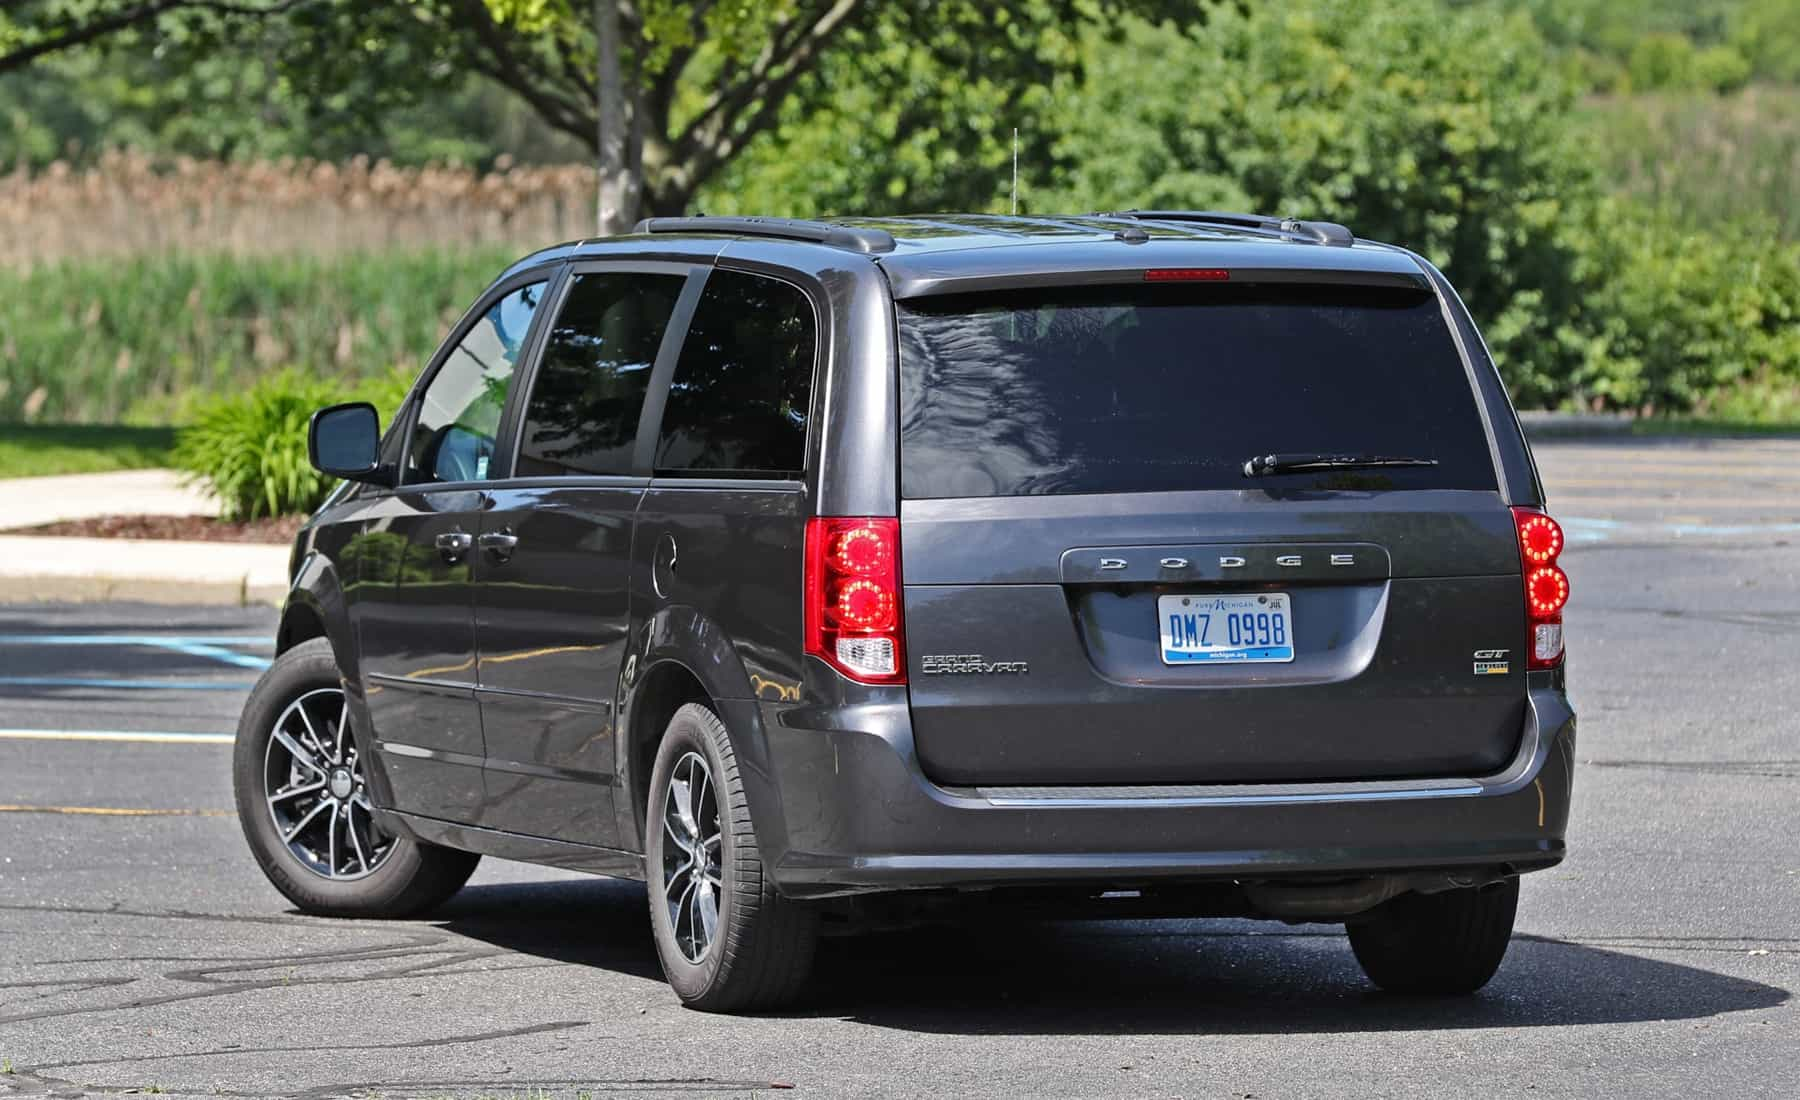 2017 Dodge Grand Caravan Exterior Rear (Photo 6 of 47)